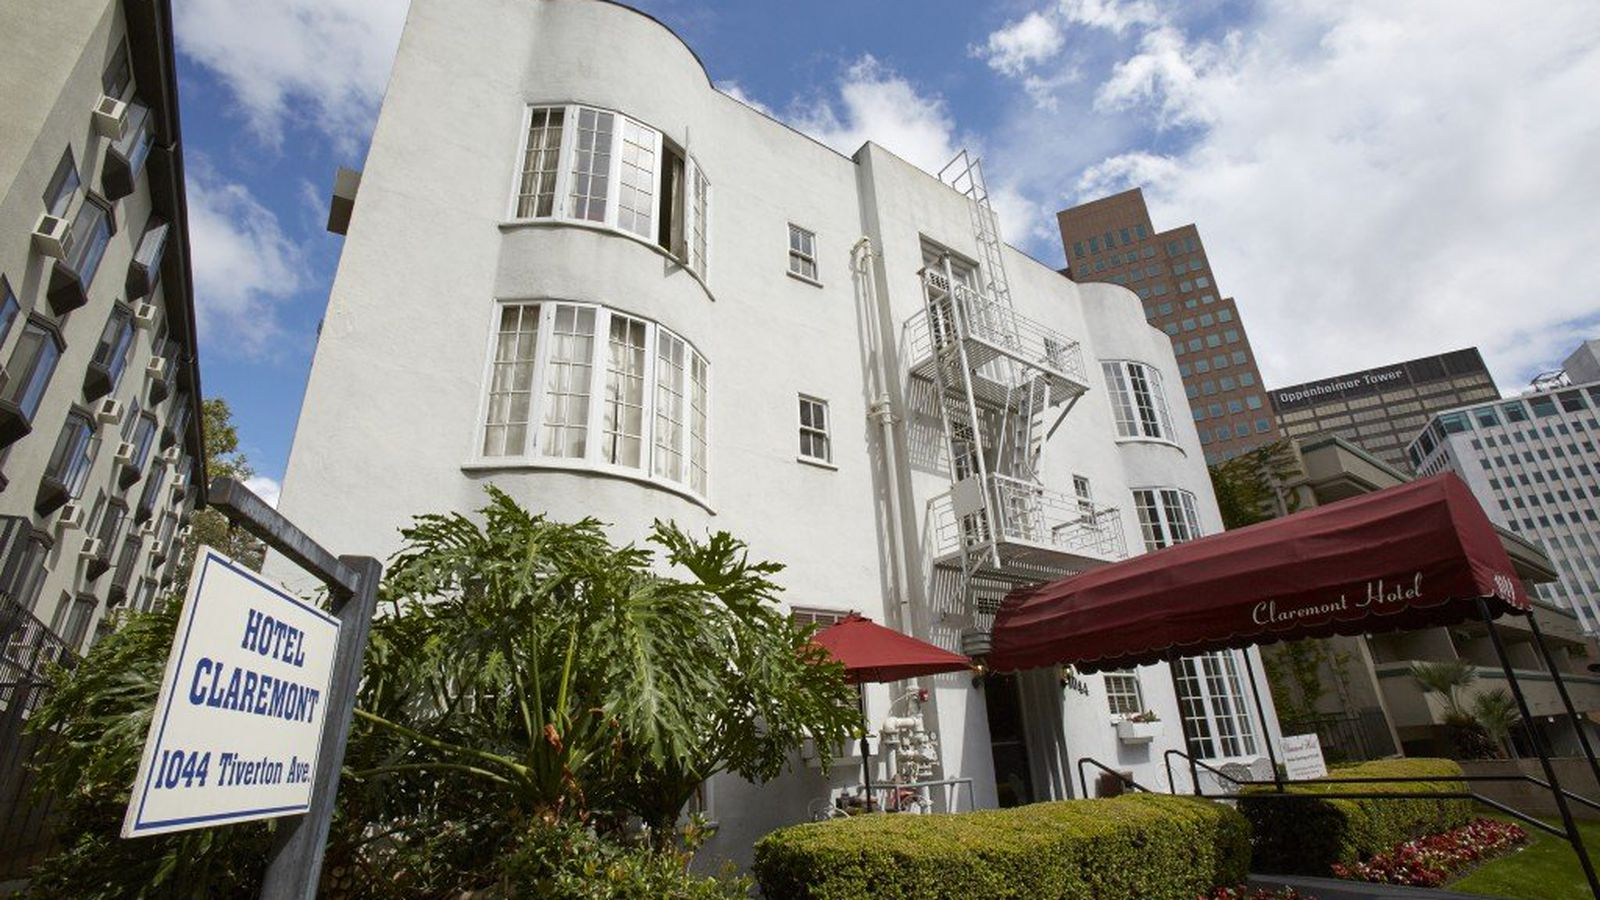 Westwood U0026 39 S First And Oldest Hotel Sells For 12 25M